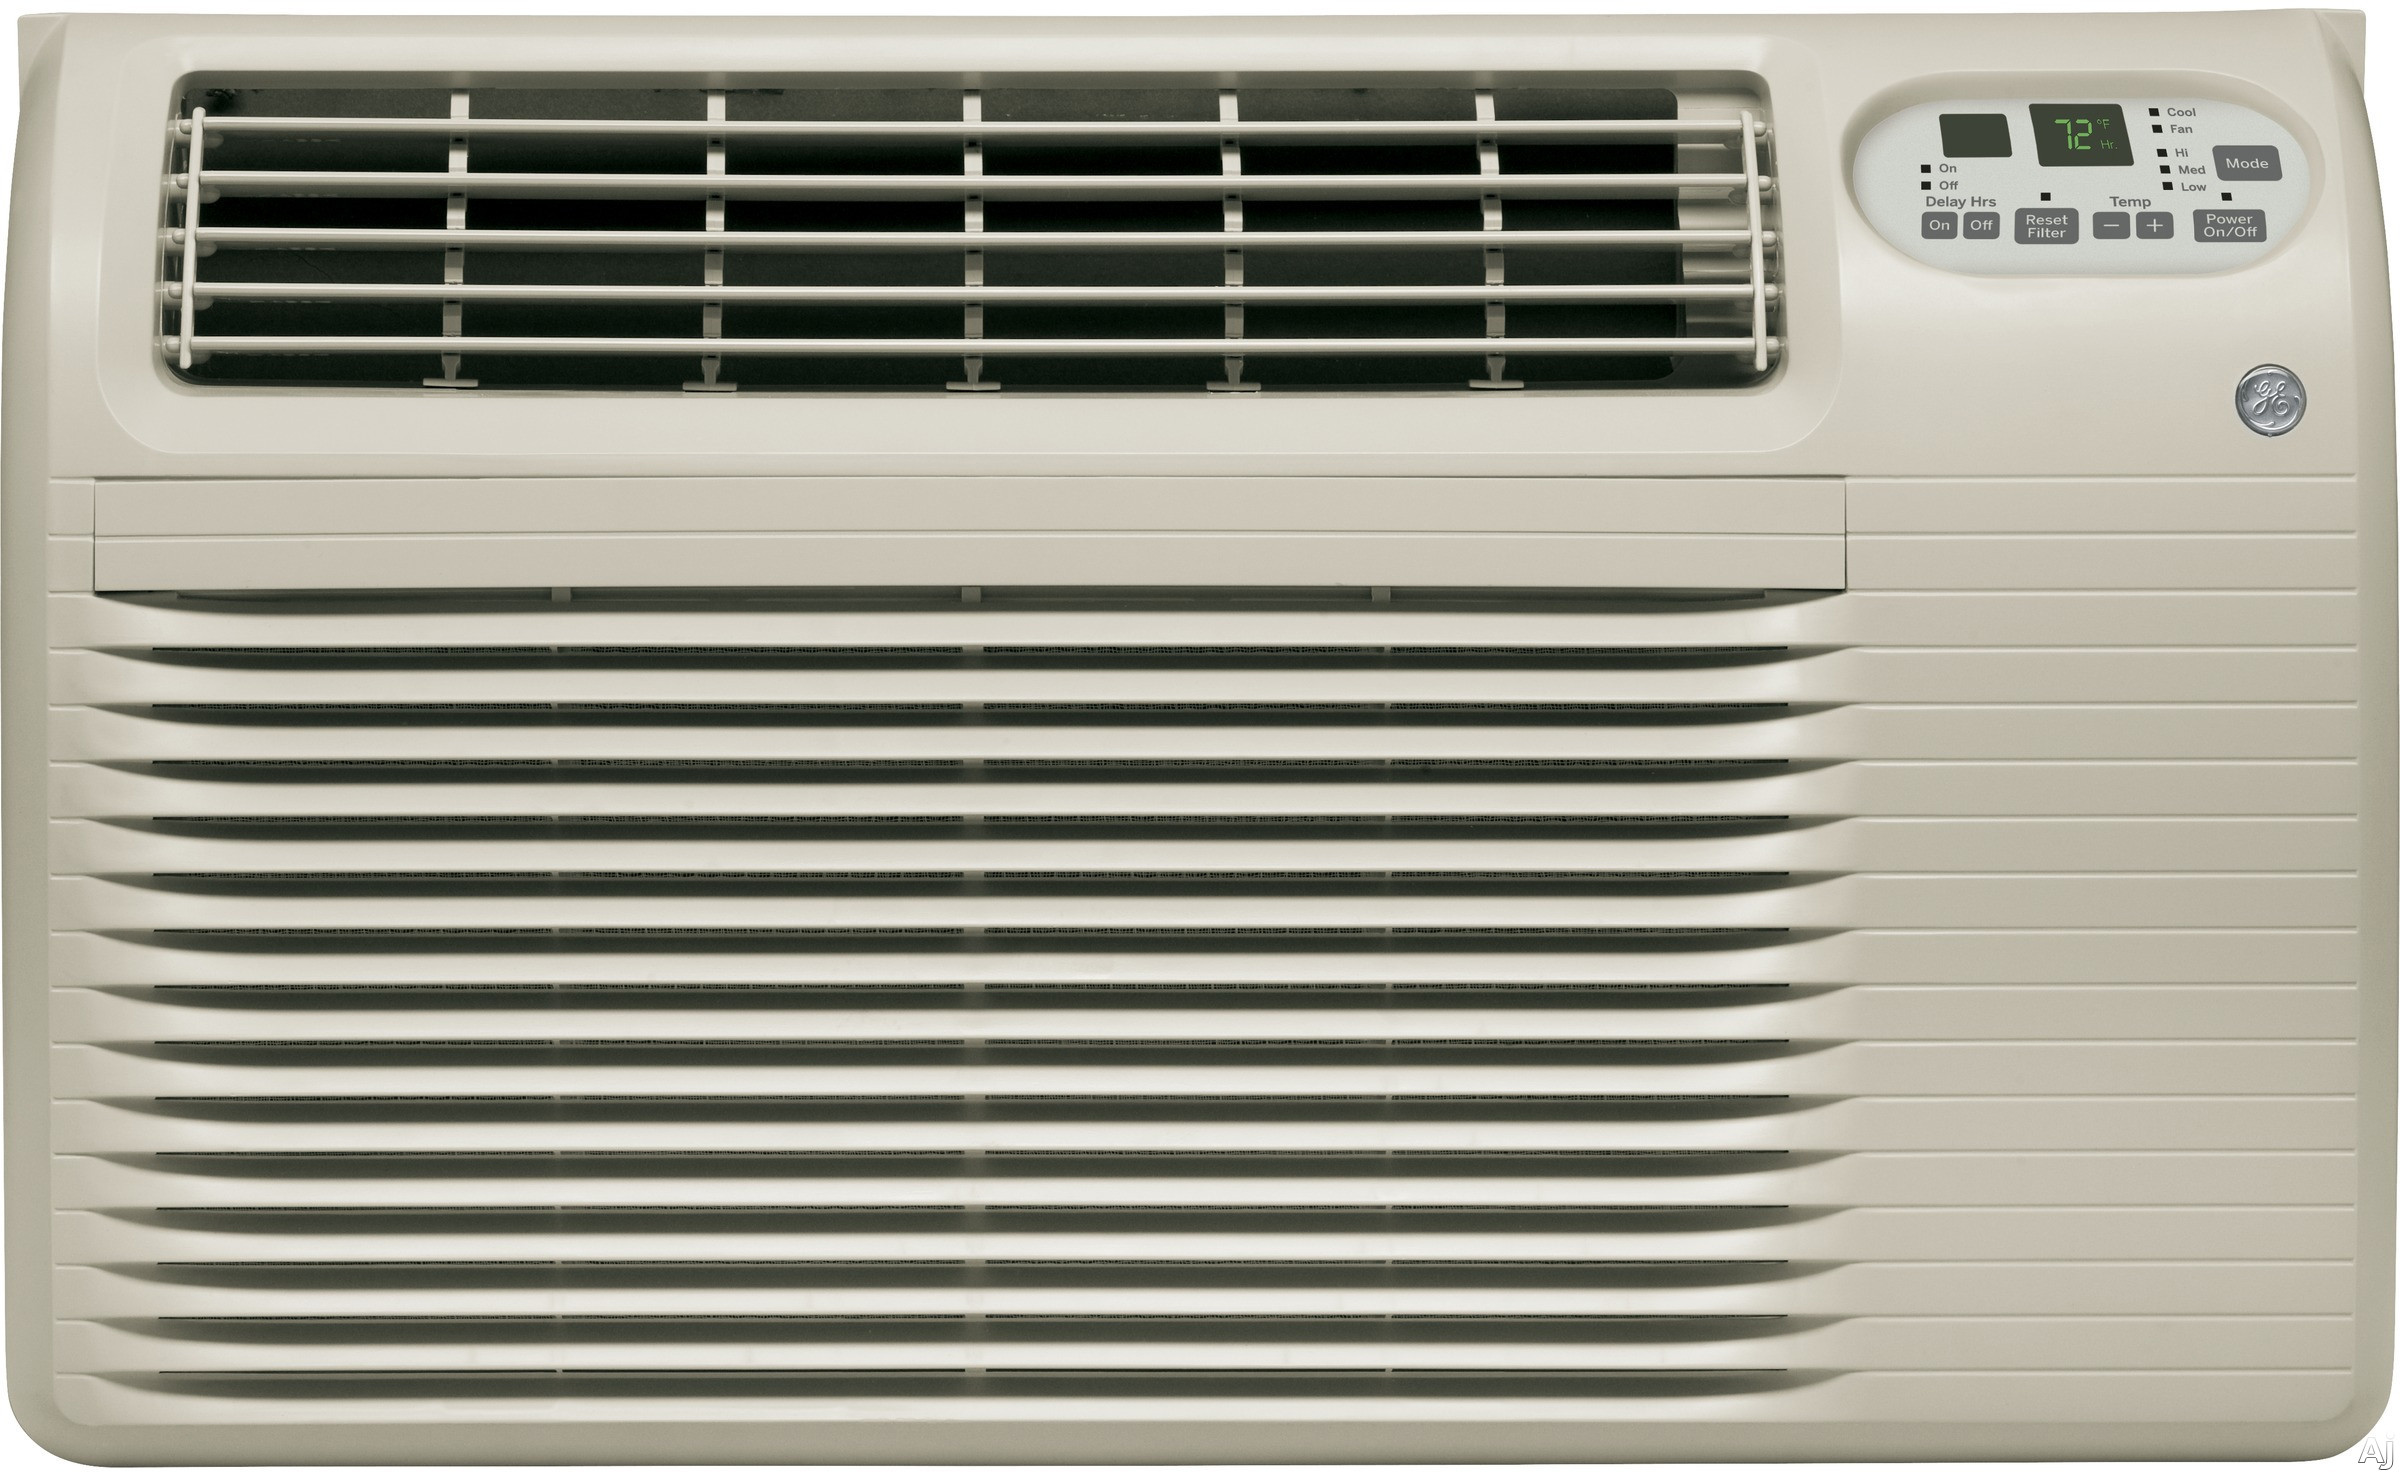 GE AJCQ08ACF 8,200 BTU Thru-the-Wall Air Conditioner with 9.8 EER, R-410A Refrigerant, 1.9 Pts/Hr Dehumidification, Energy Saver, Electronic Controls, ADA Compliant, ENERGY STAR and Remote Control AJCQ08ACF